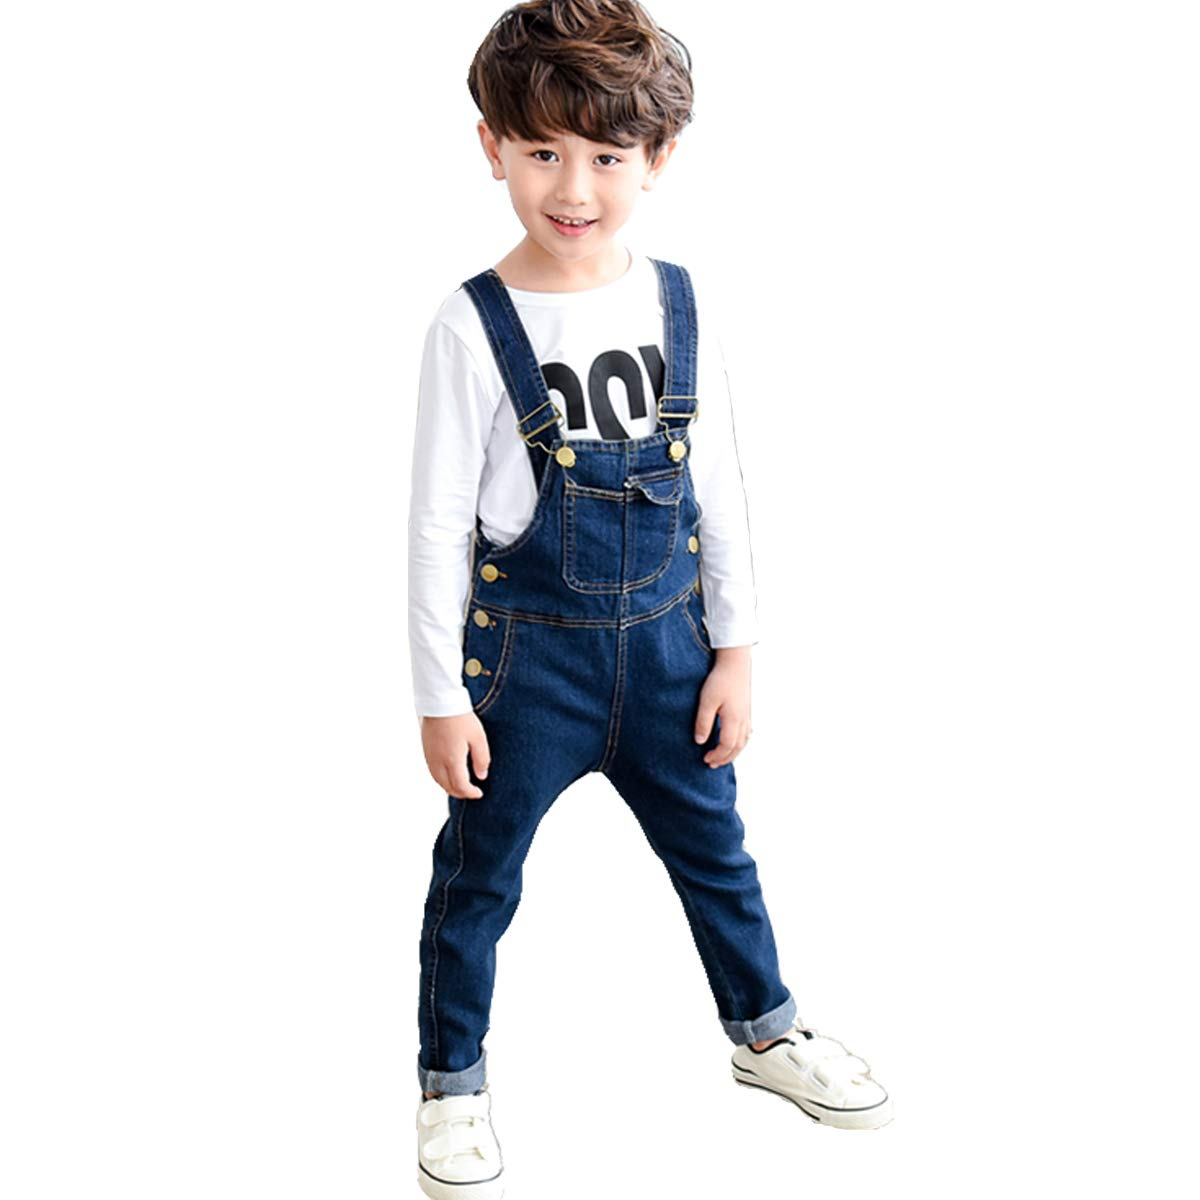 OnlyAngel Boys Suspender Jeans Adjustable Straps Cotton Denim Overalls Age 4-13